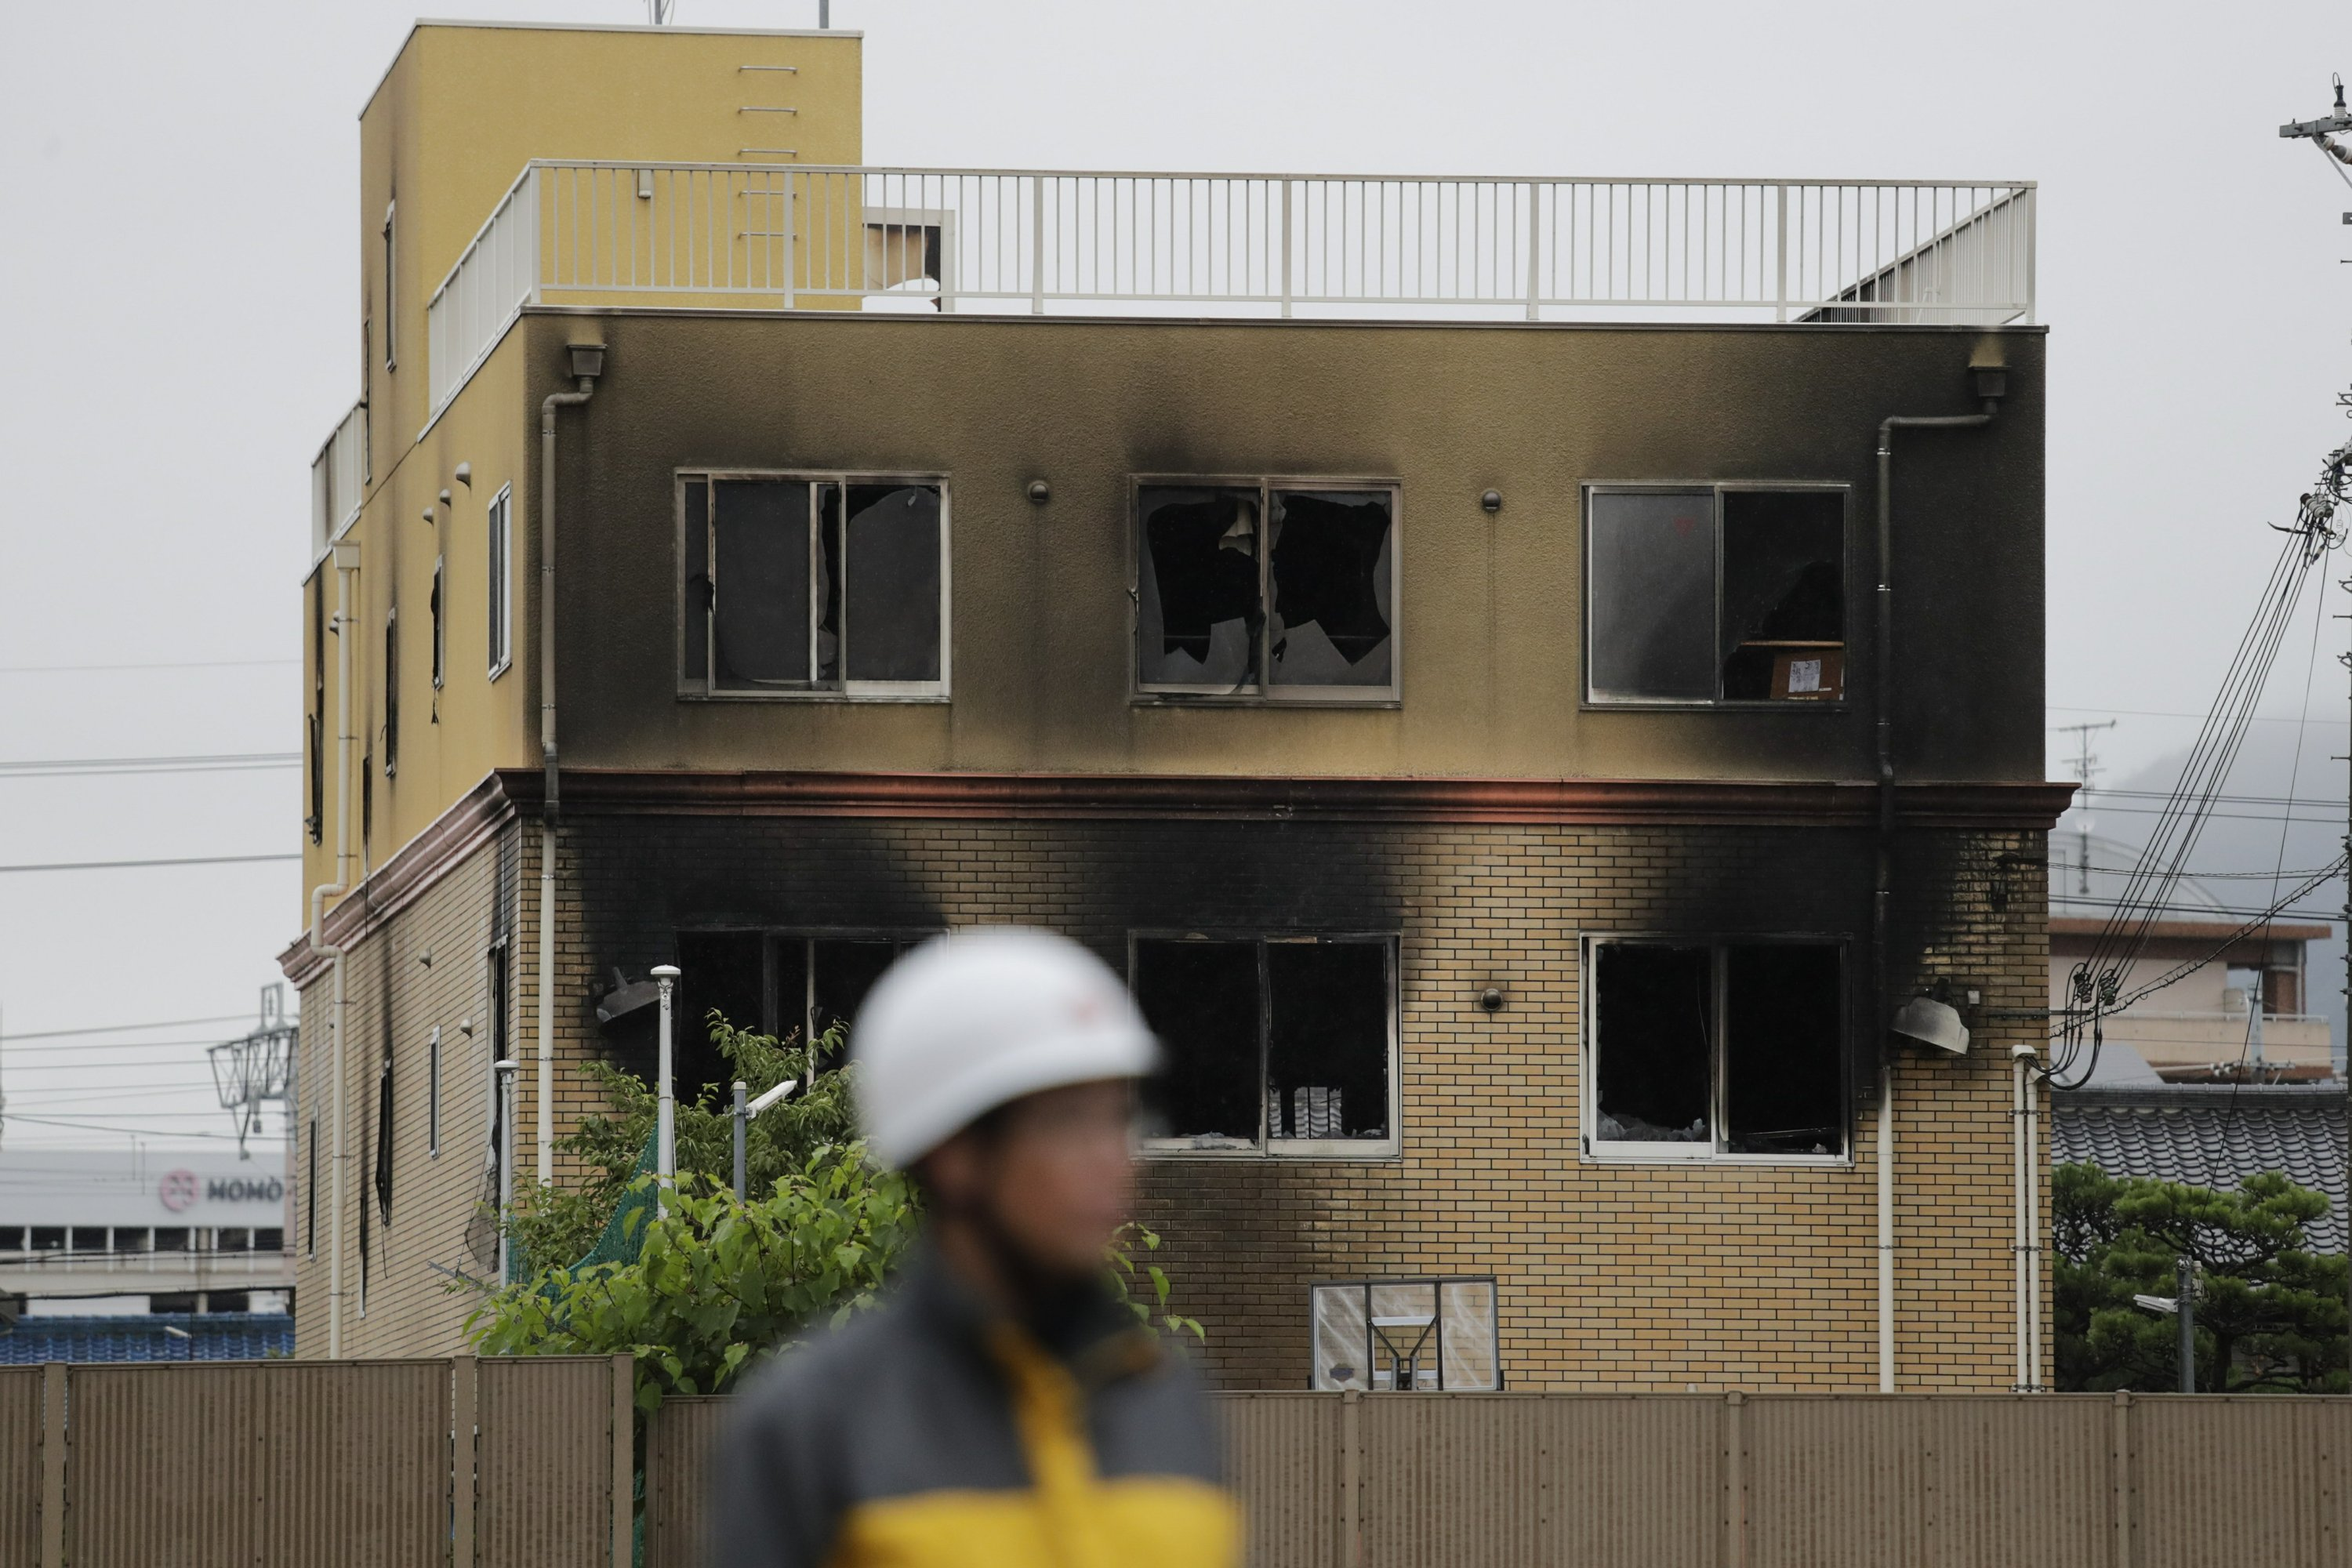 Man shouting 'You die!' kills 33 in Japan anime studio fire